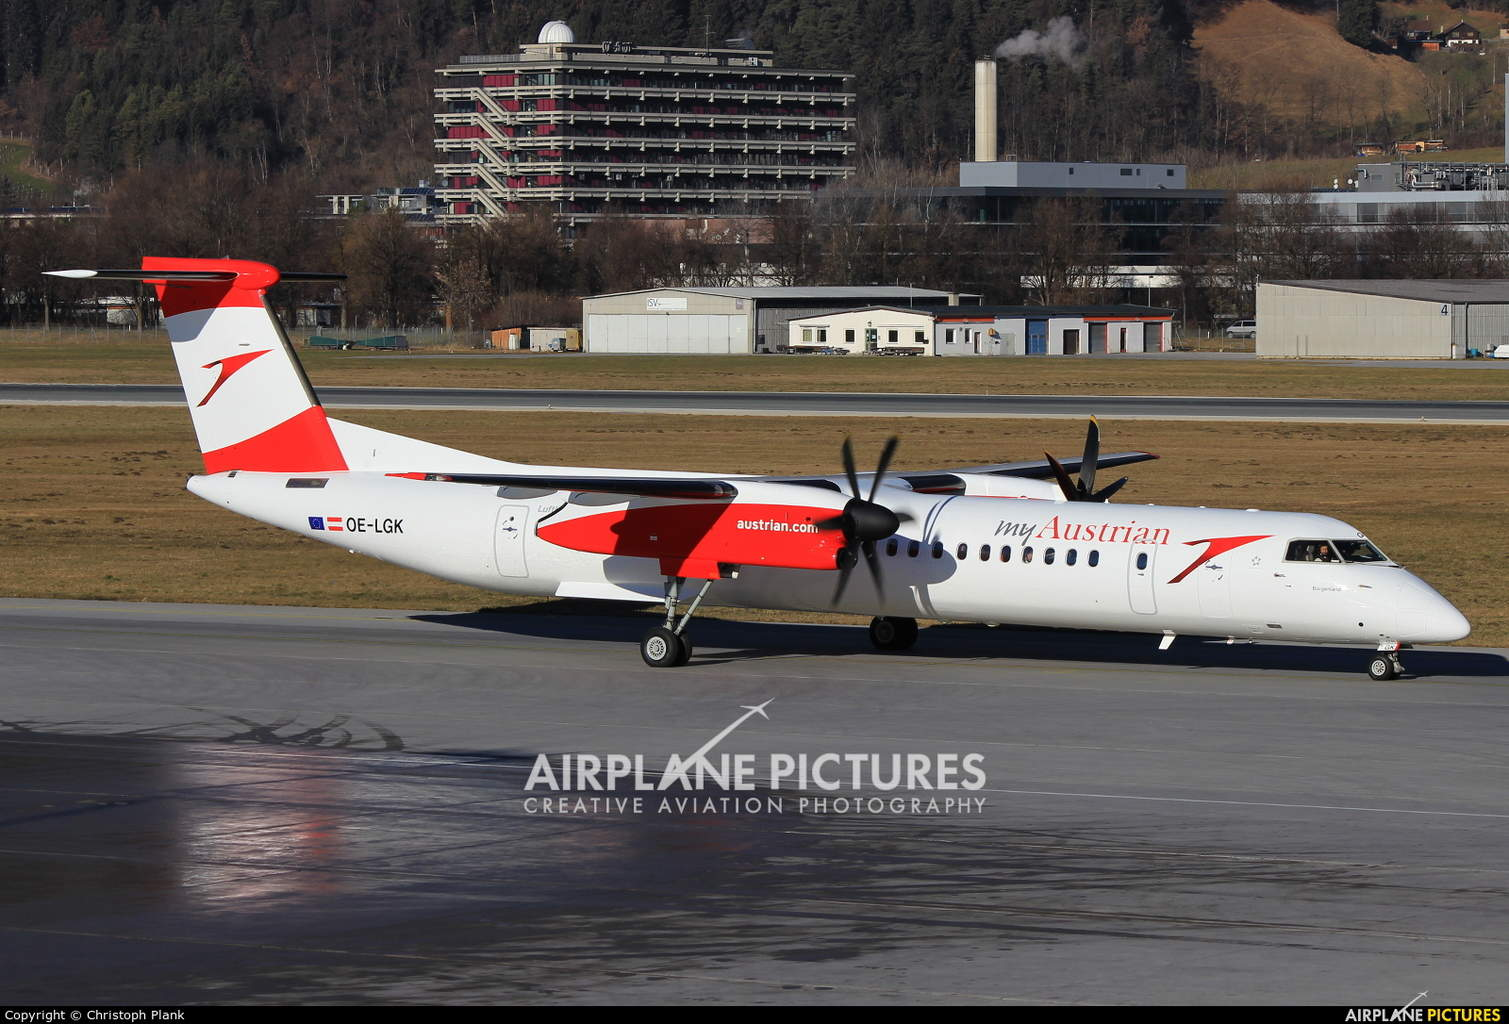 """Austrian Airlines drops controversial """"My"""" in new livery"""